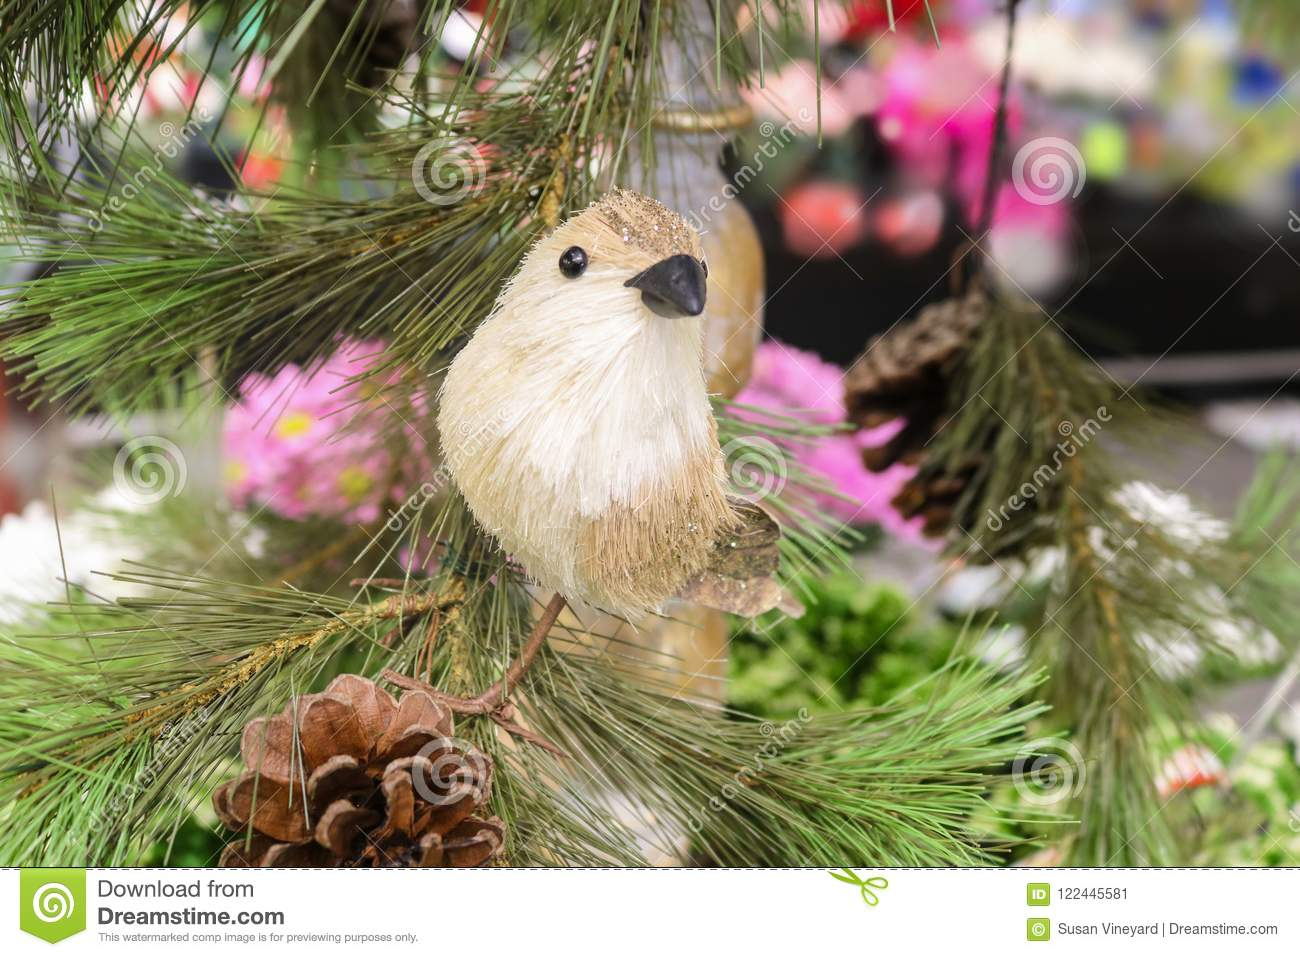 Closeup of Christmas straw bird perched on an artificial tree with pine cones with pink and colorful bokeh background